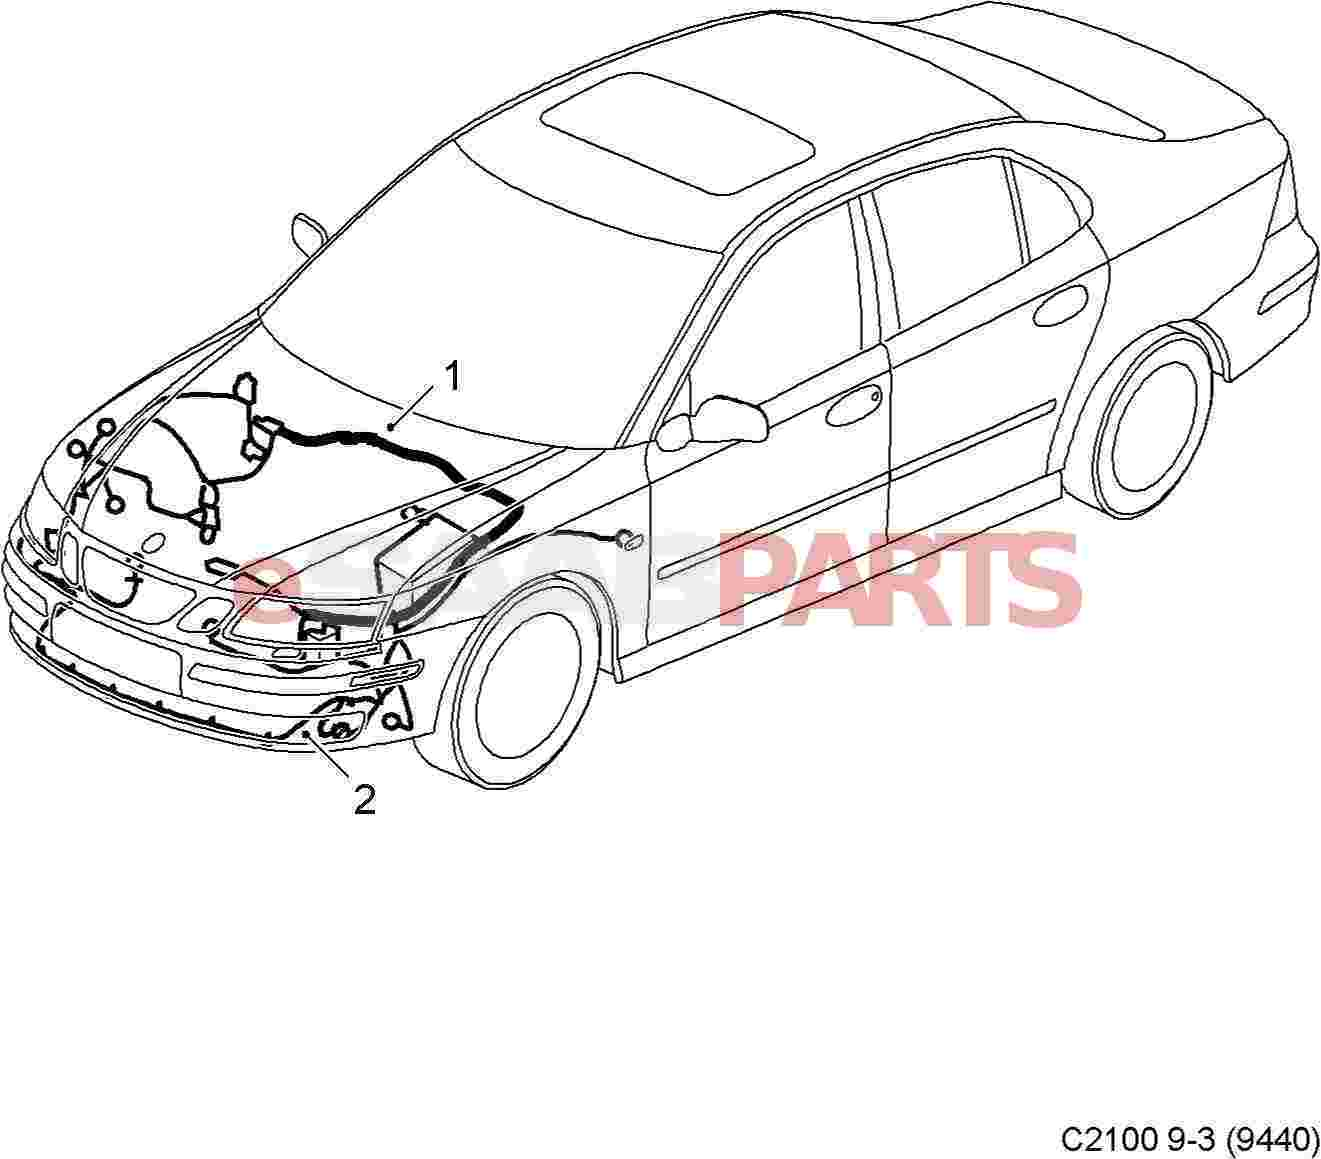 Saab 9 3 2003 Front Headlight Wiring Diagram Electrical Bumper Ford Focus Pdf Fog Lights Explore Schematic U2022 1999